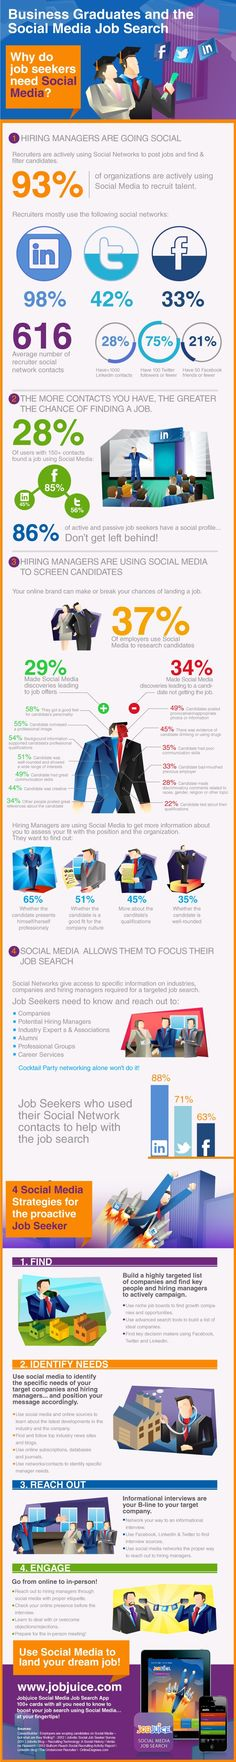 81 Best Social Media in the Job Search images in 2012 | Internet